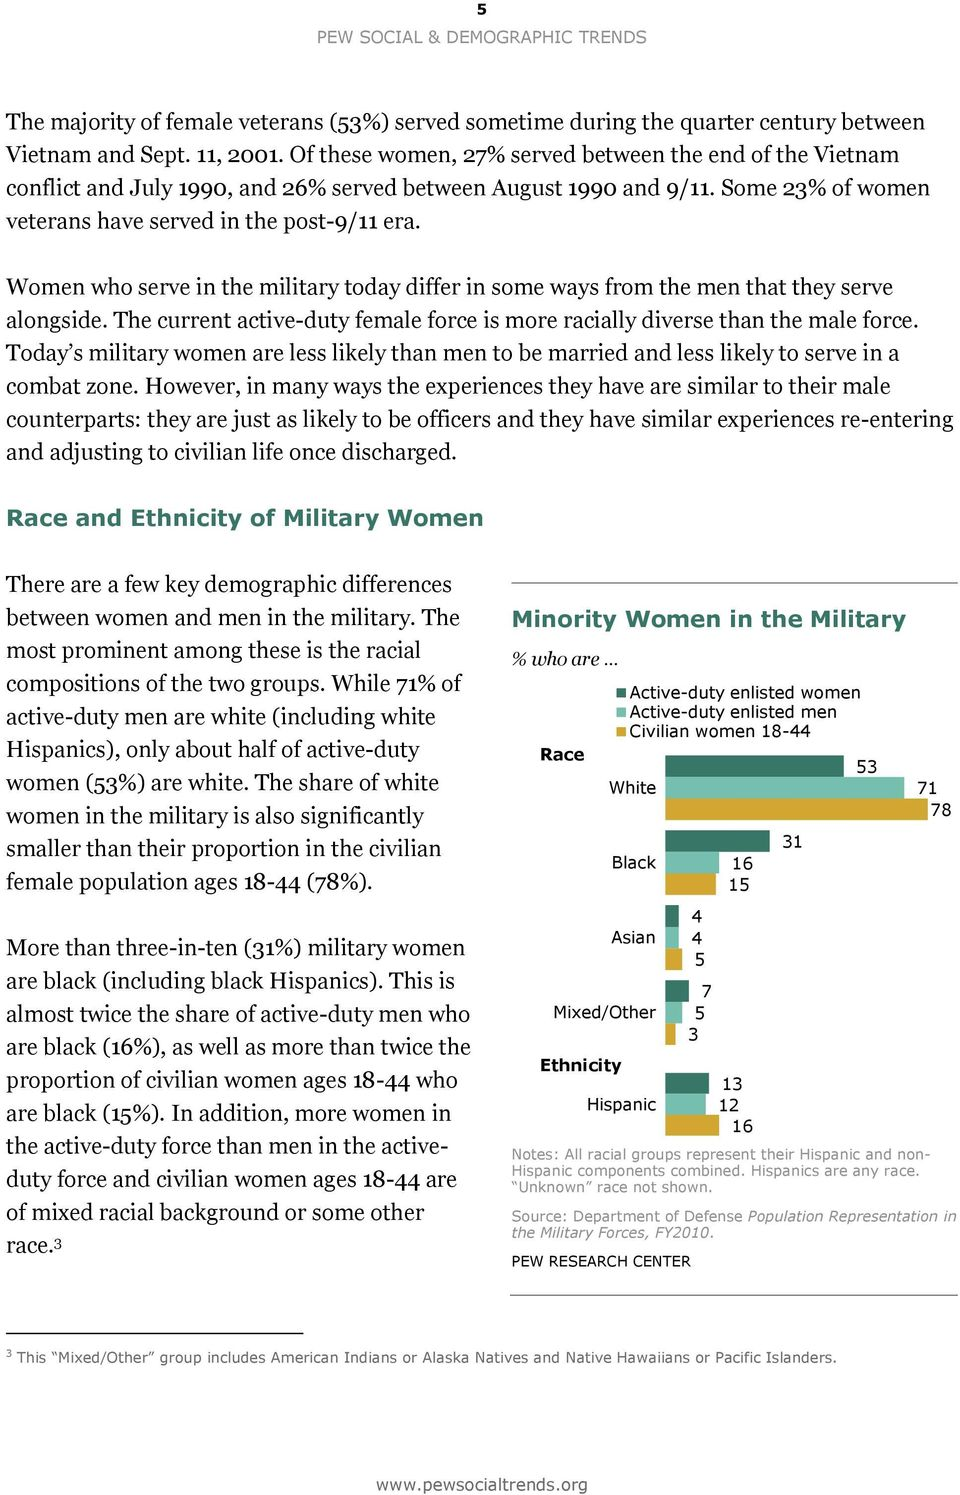 who serve in the military today differ in some ways from the men that they serve alongside. The current active-duty female force is more racially diverse than the male force.